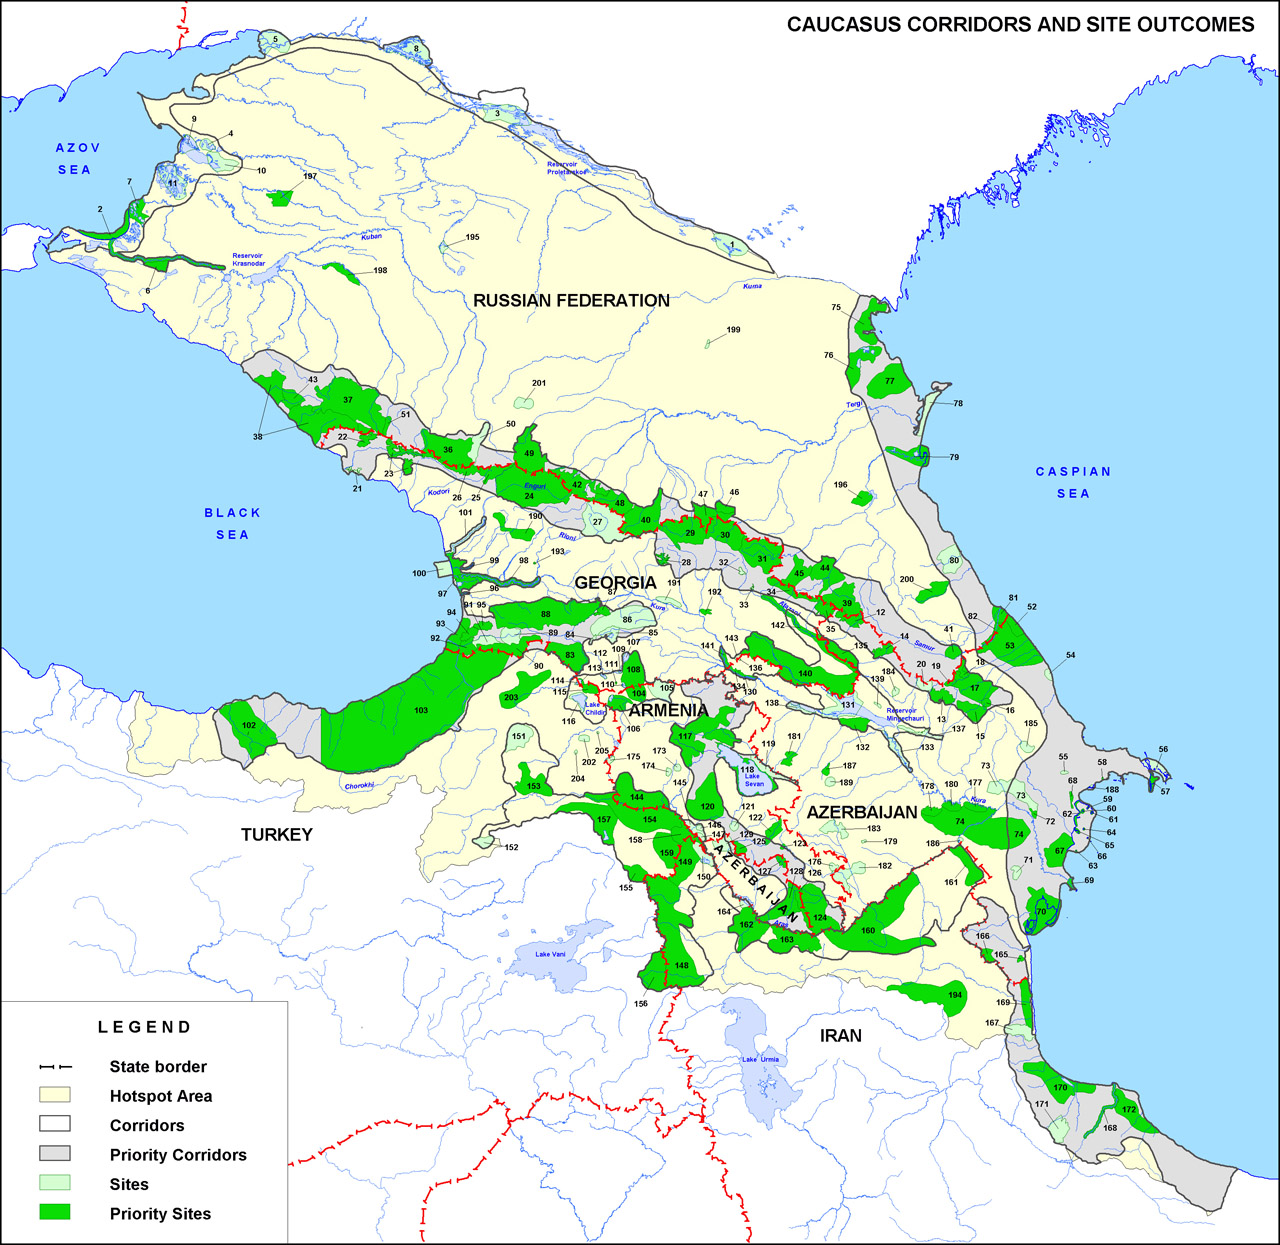 Caucasus Critical Ecosystem Partnership Fund WWF - Georgia map key